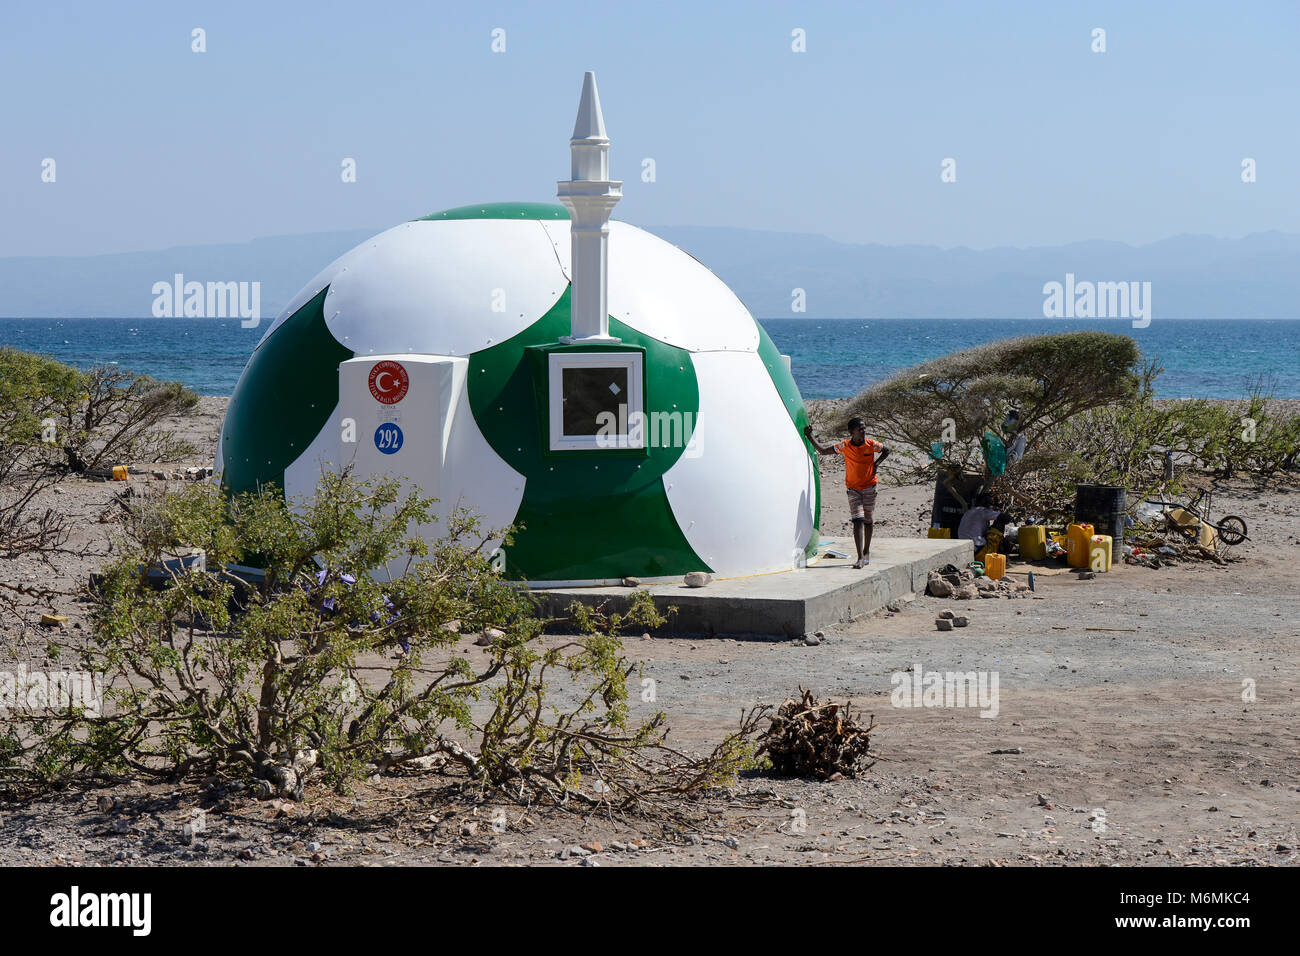 DJIBOUTI , Tadjoura, Turkey financed mosque in football design, NEVKA composite house, yeter and halil mosque  / - Stock Image